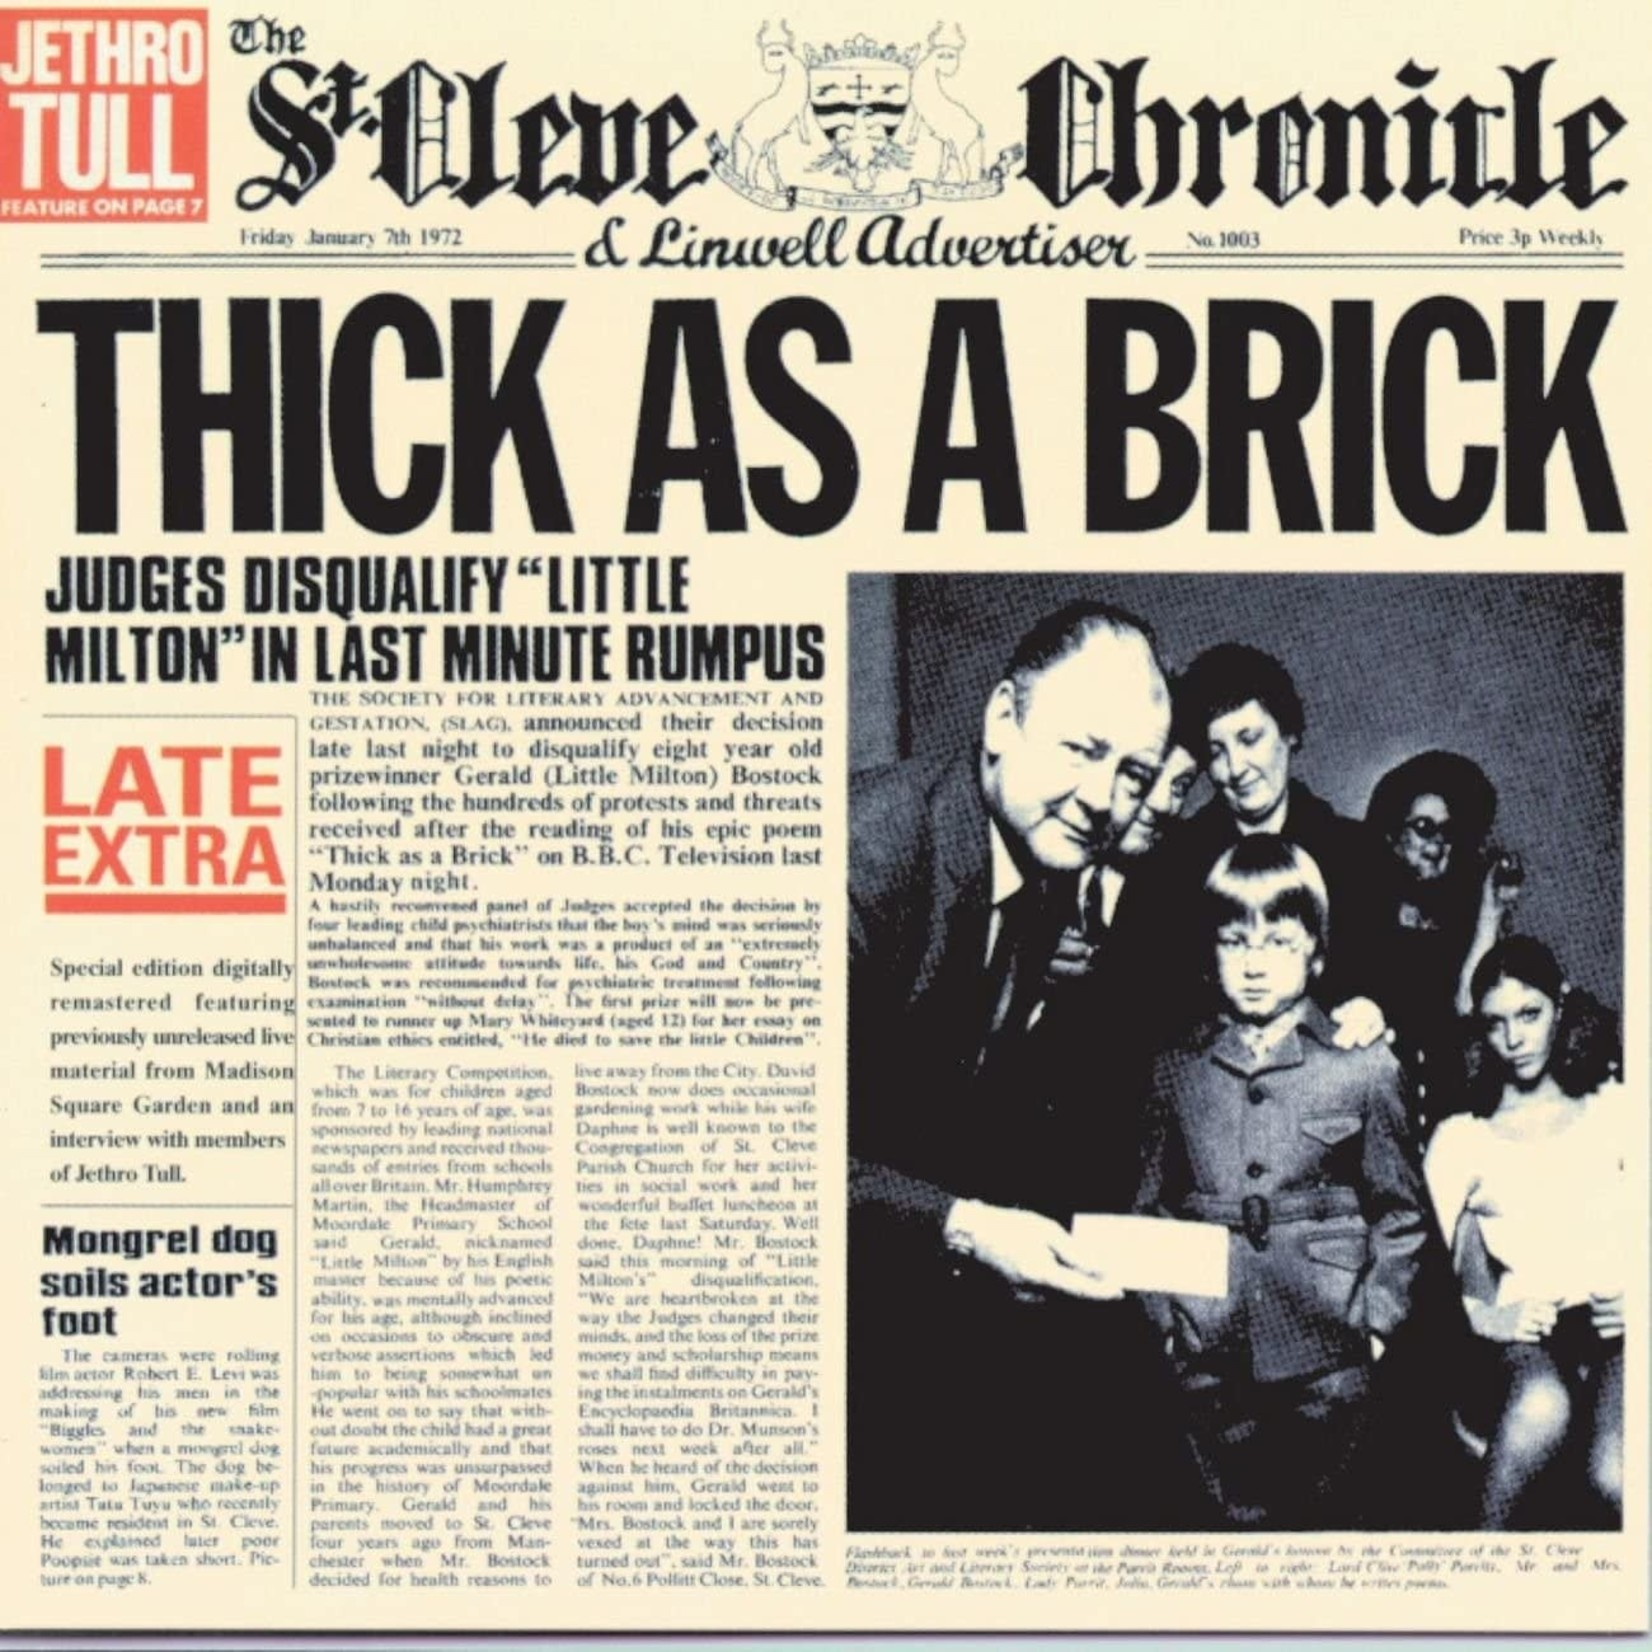 [Vintage] Jethro Tull: Thick As a Brick (reissue)